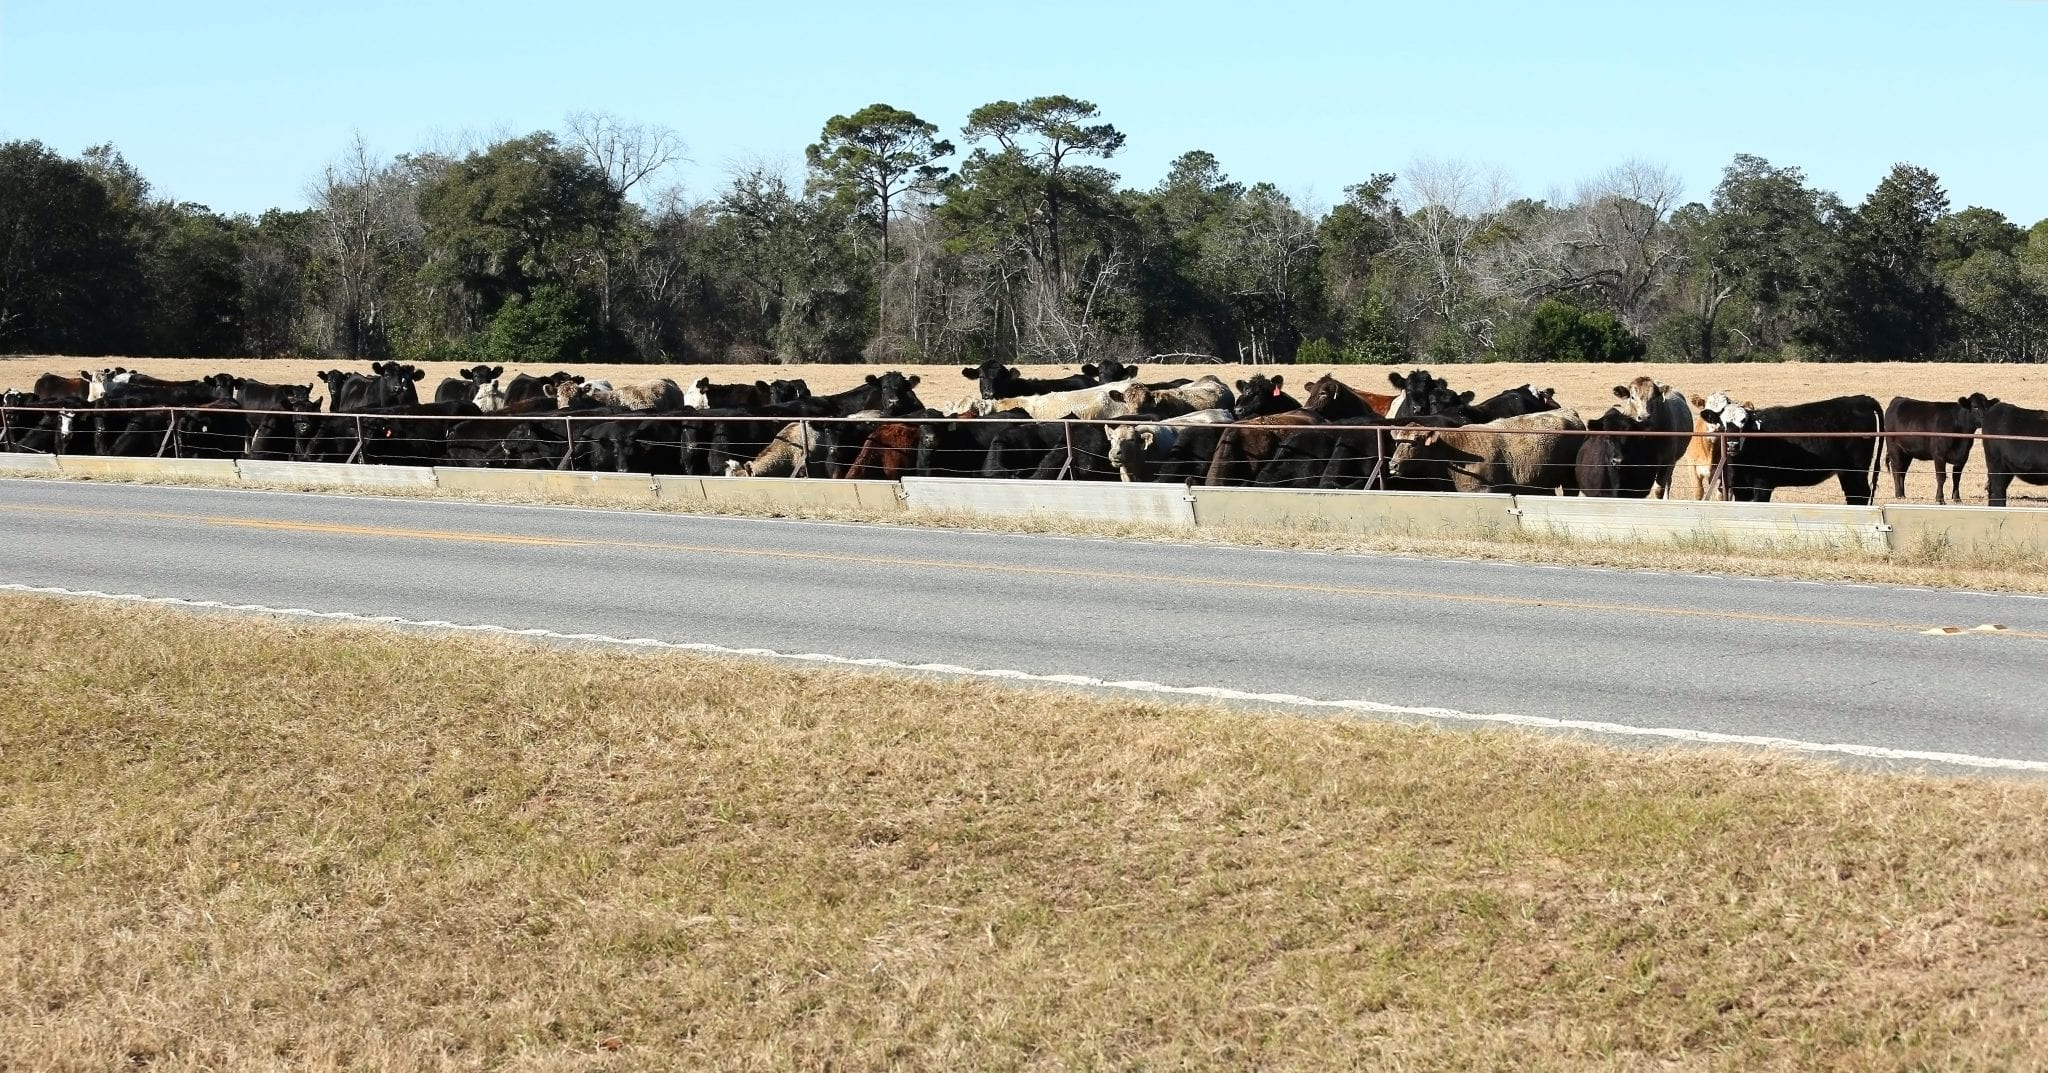 cattle at feed bunker